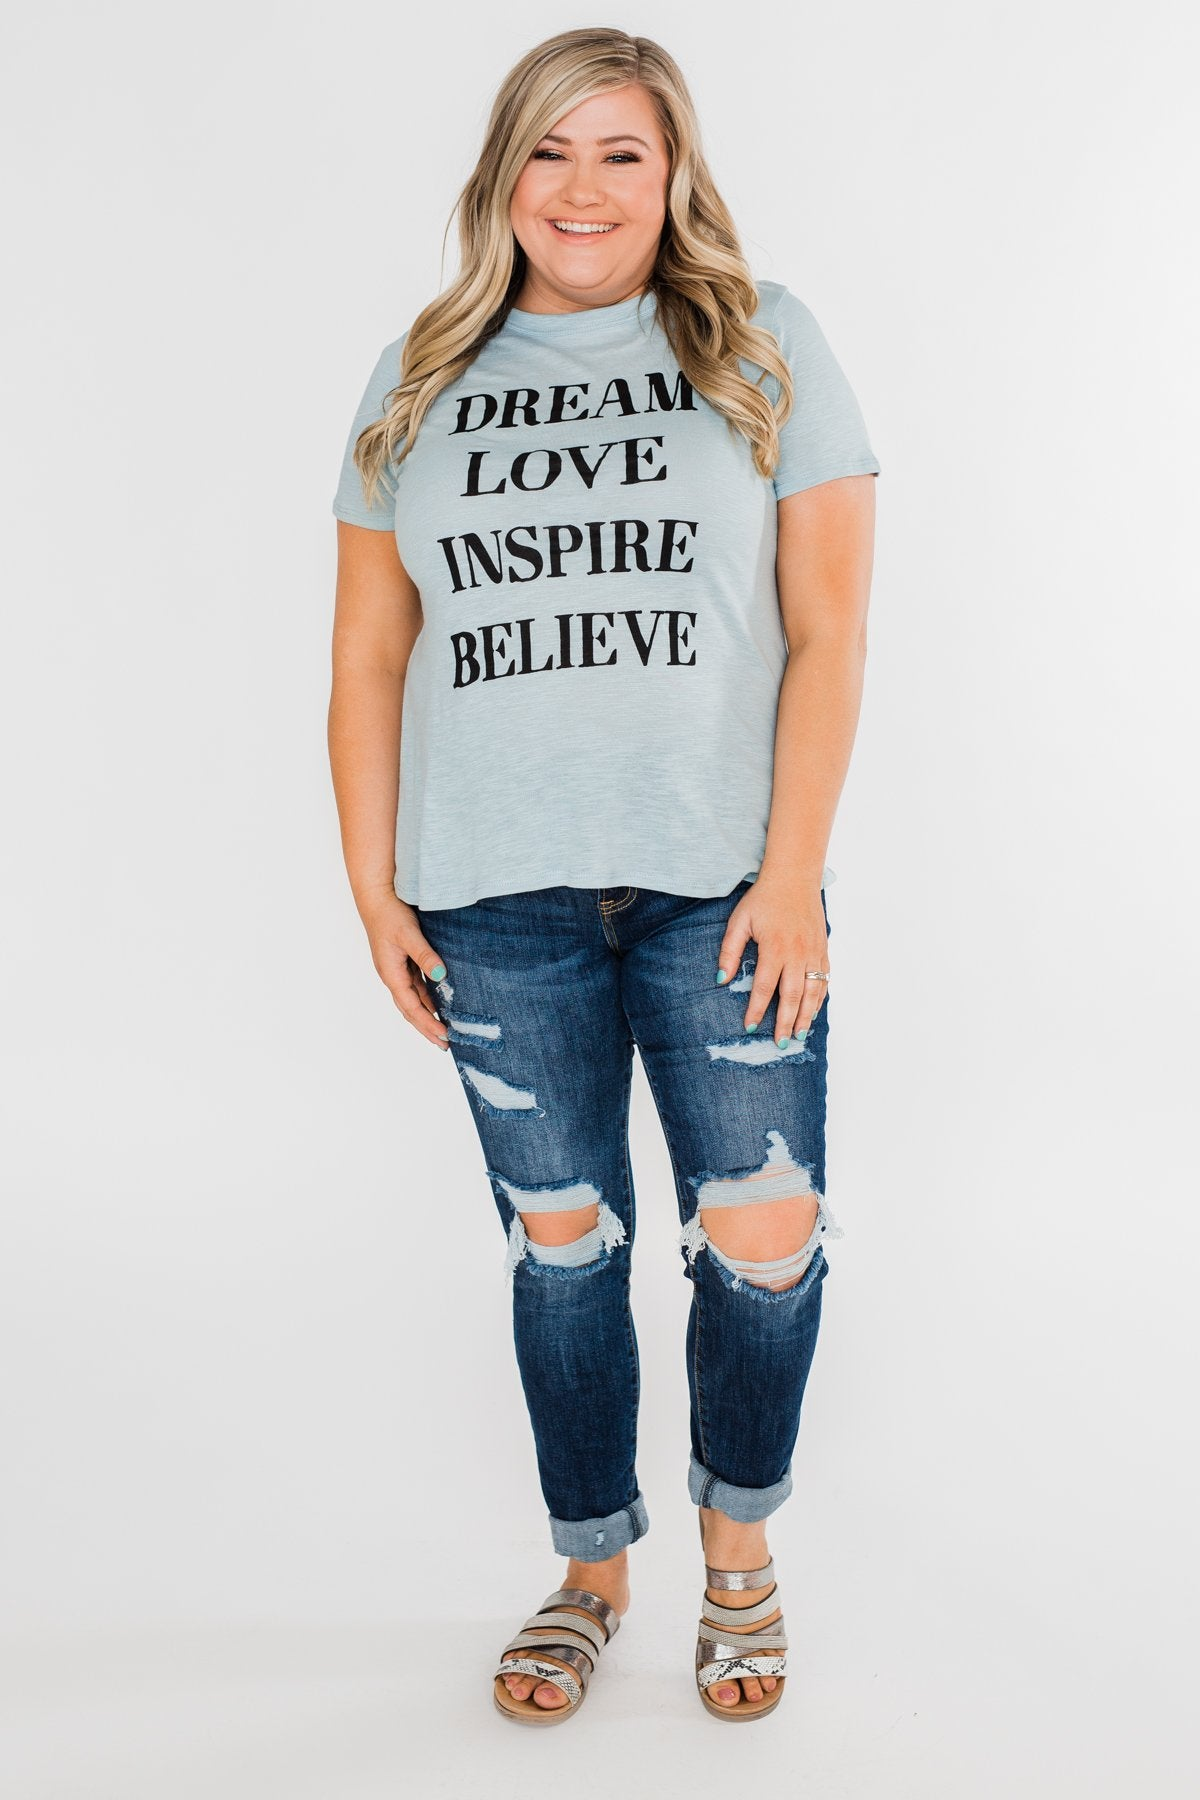 Dream, Love, Inspire, Believe Graphic Tee- Powder Blue